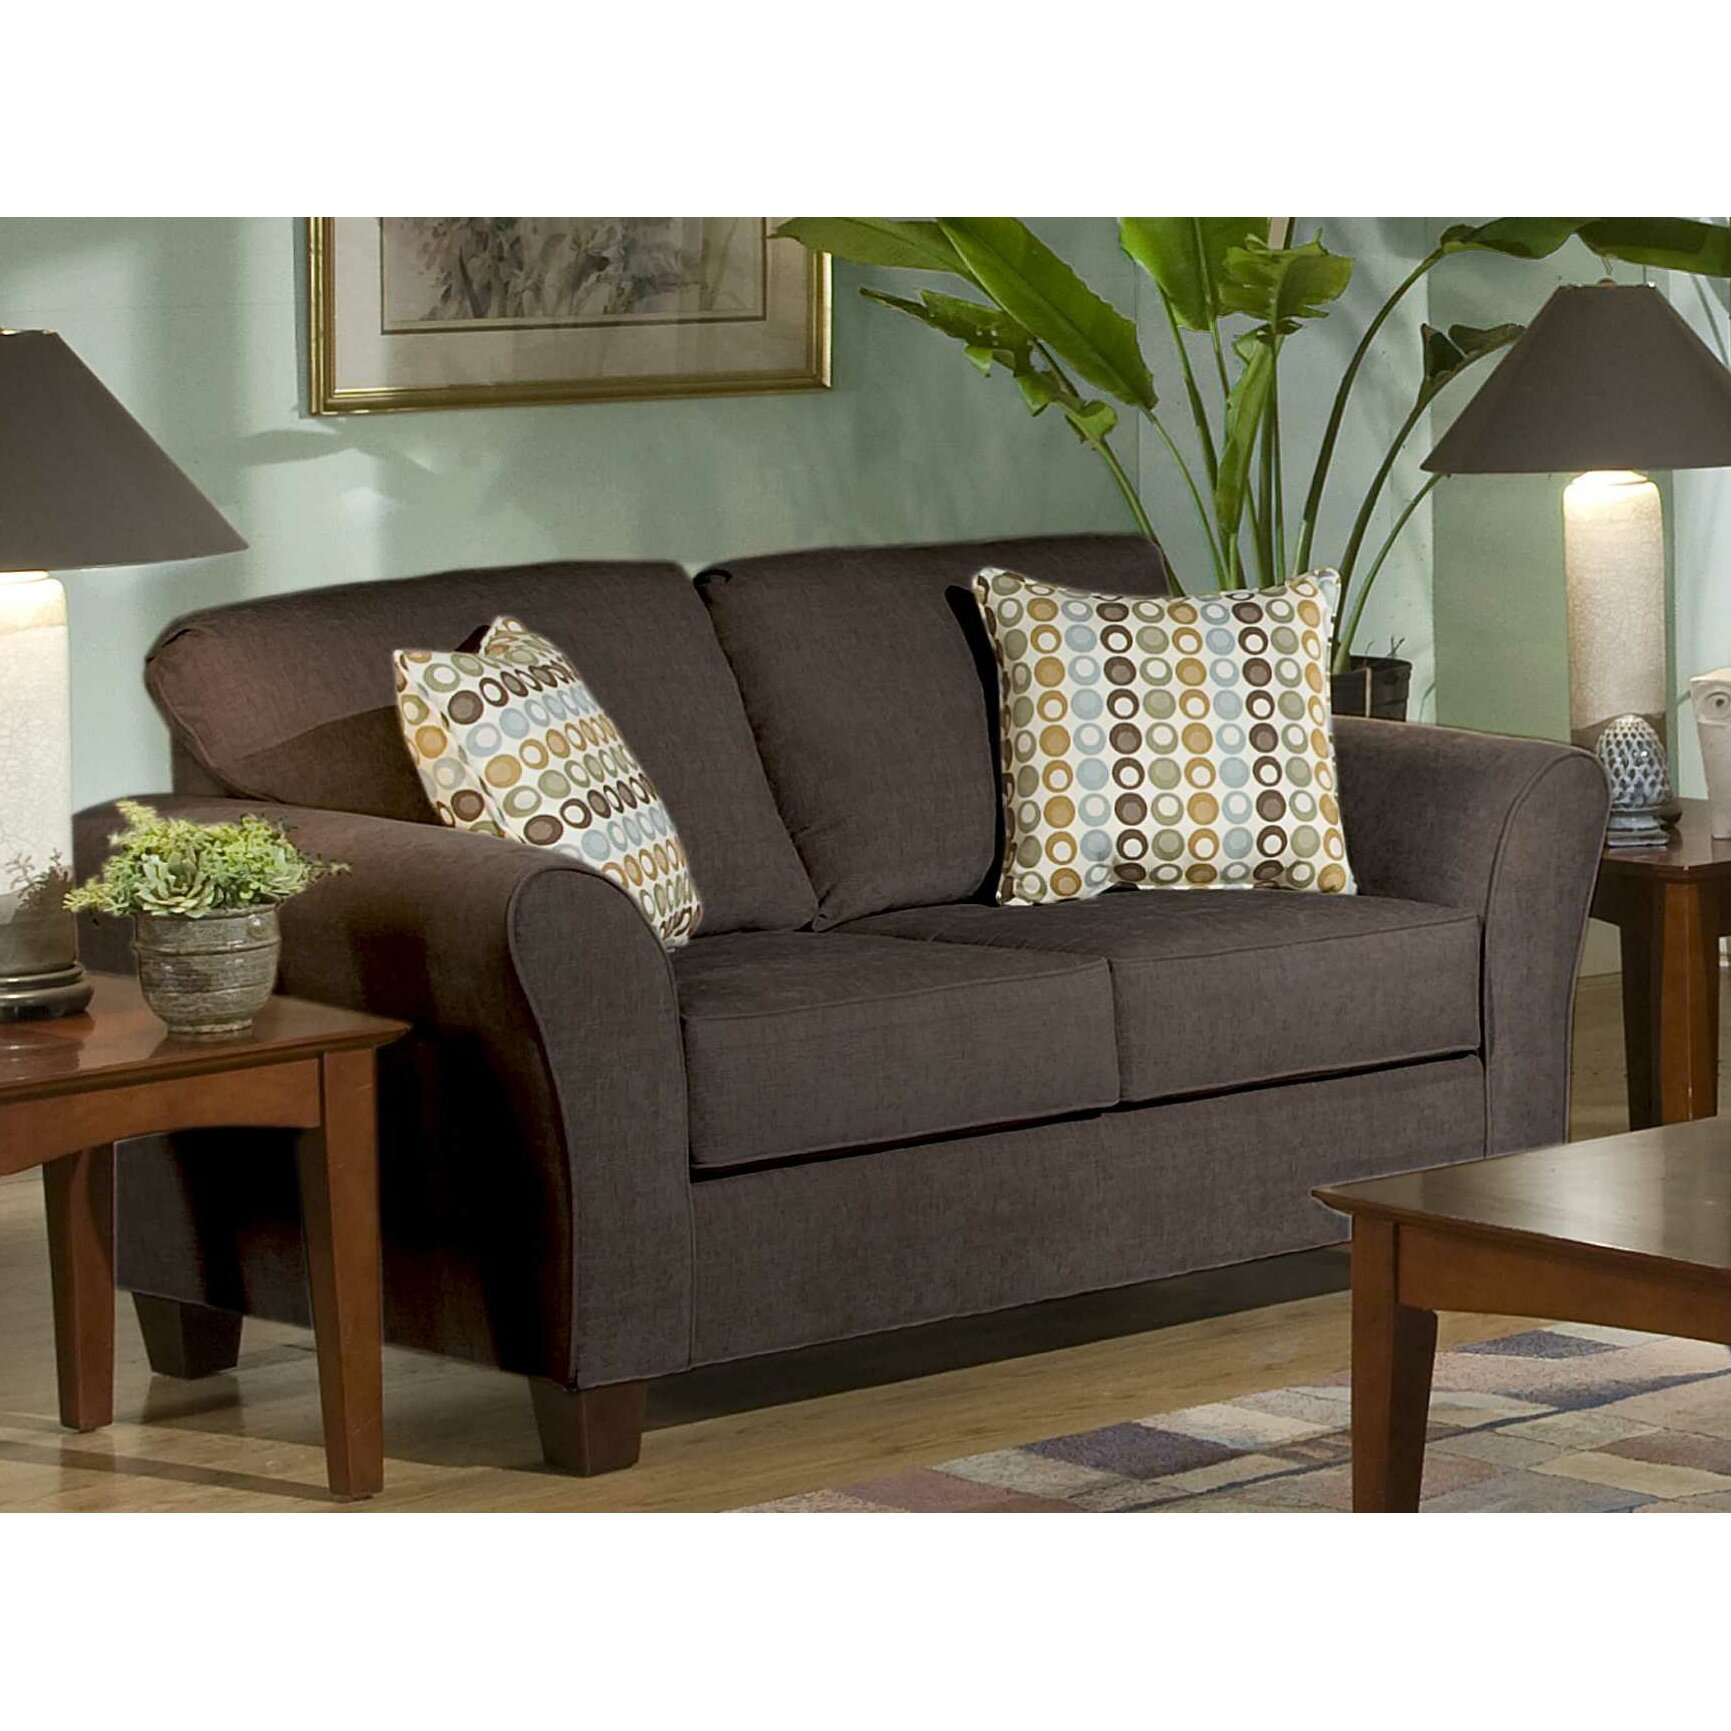 Three Posts Serta Upholstery Franklin Loveseat Reviews Wayfair